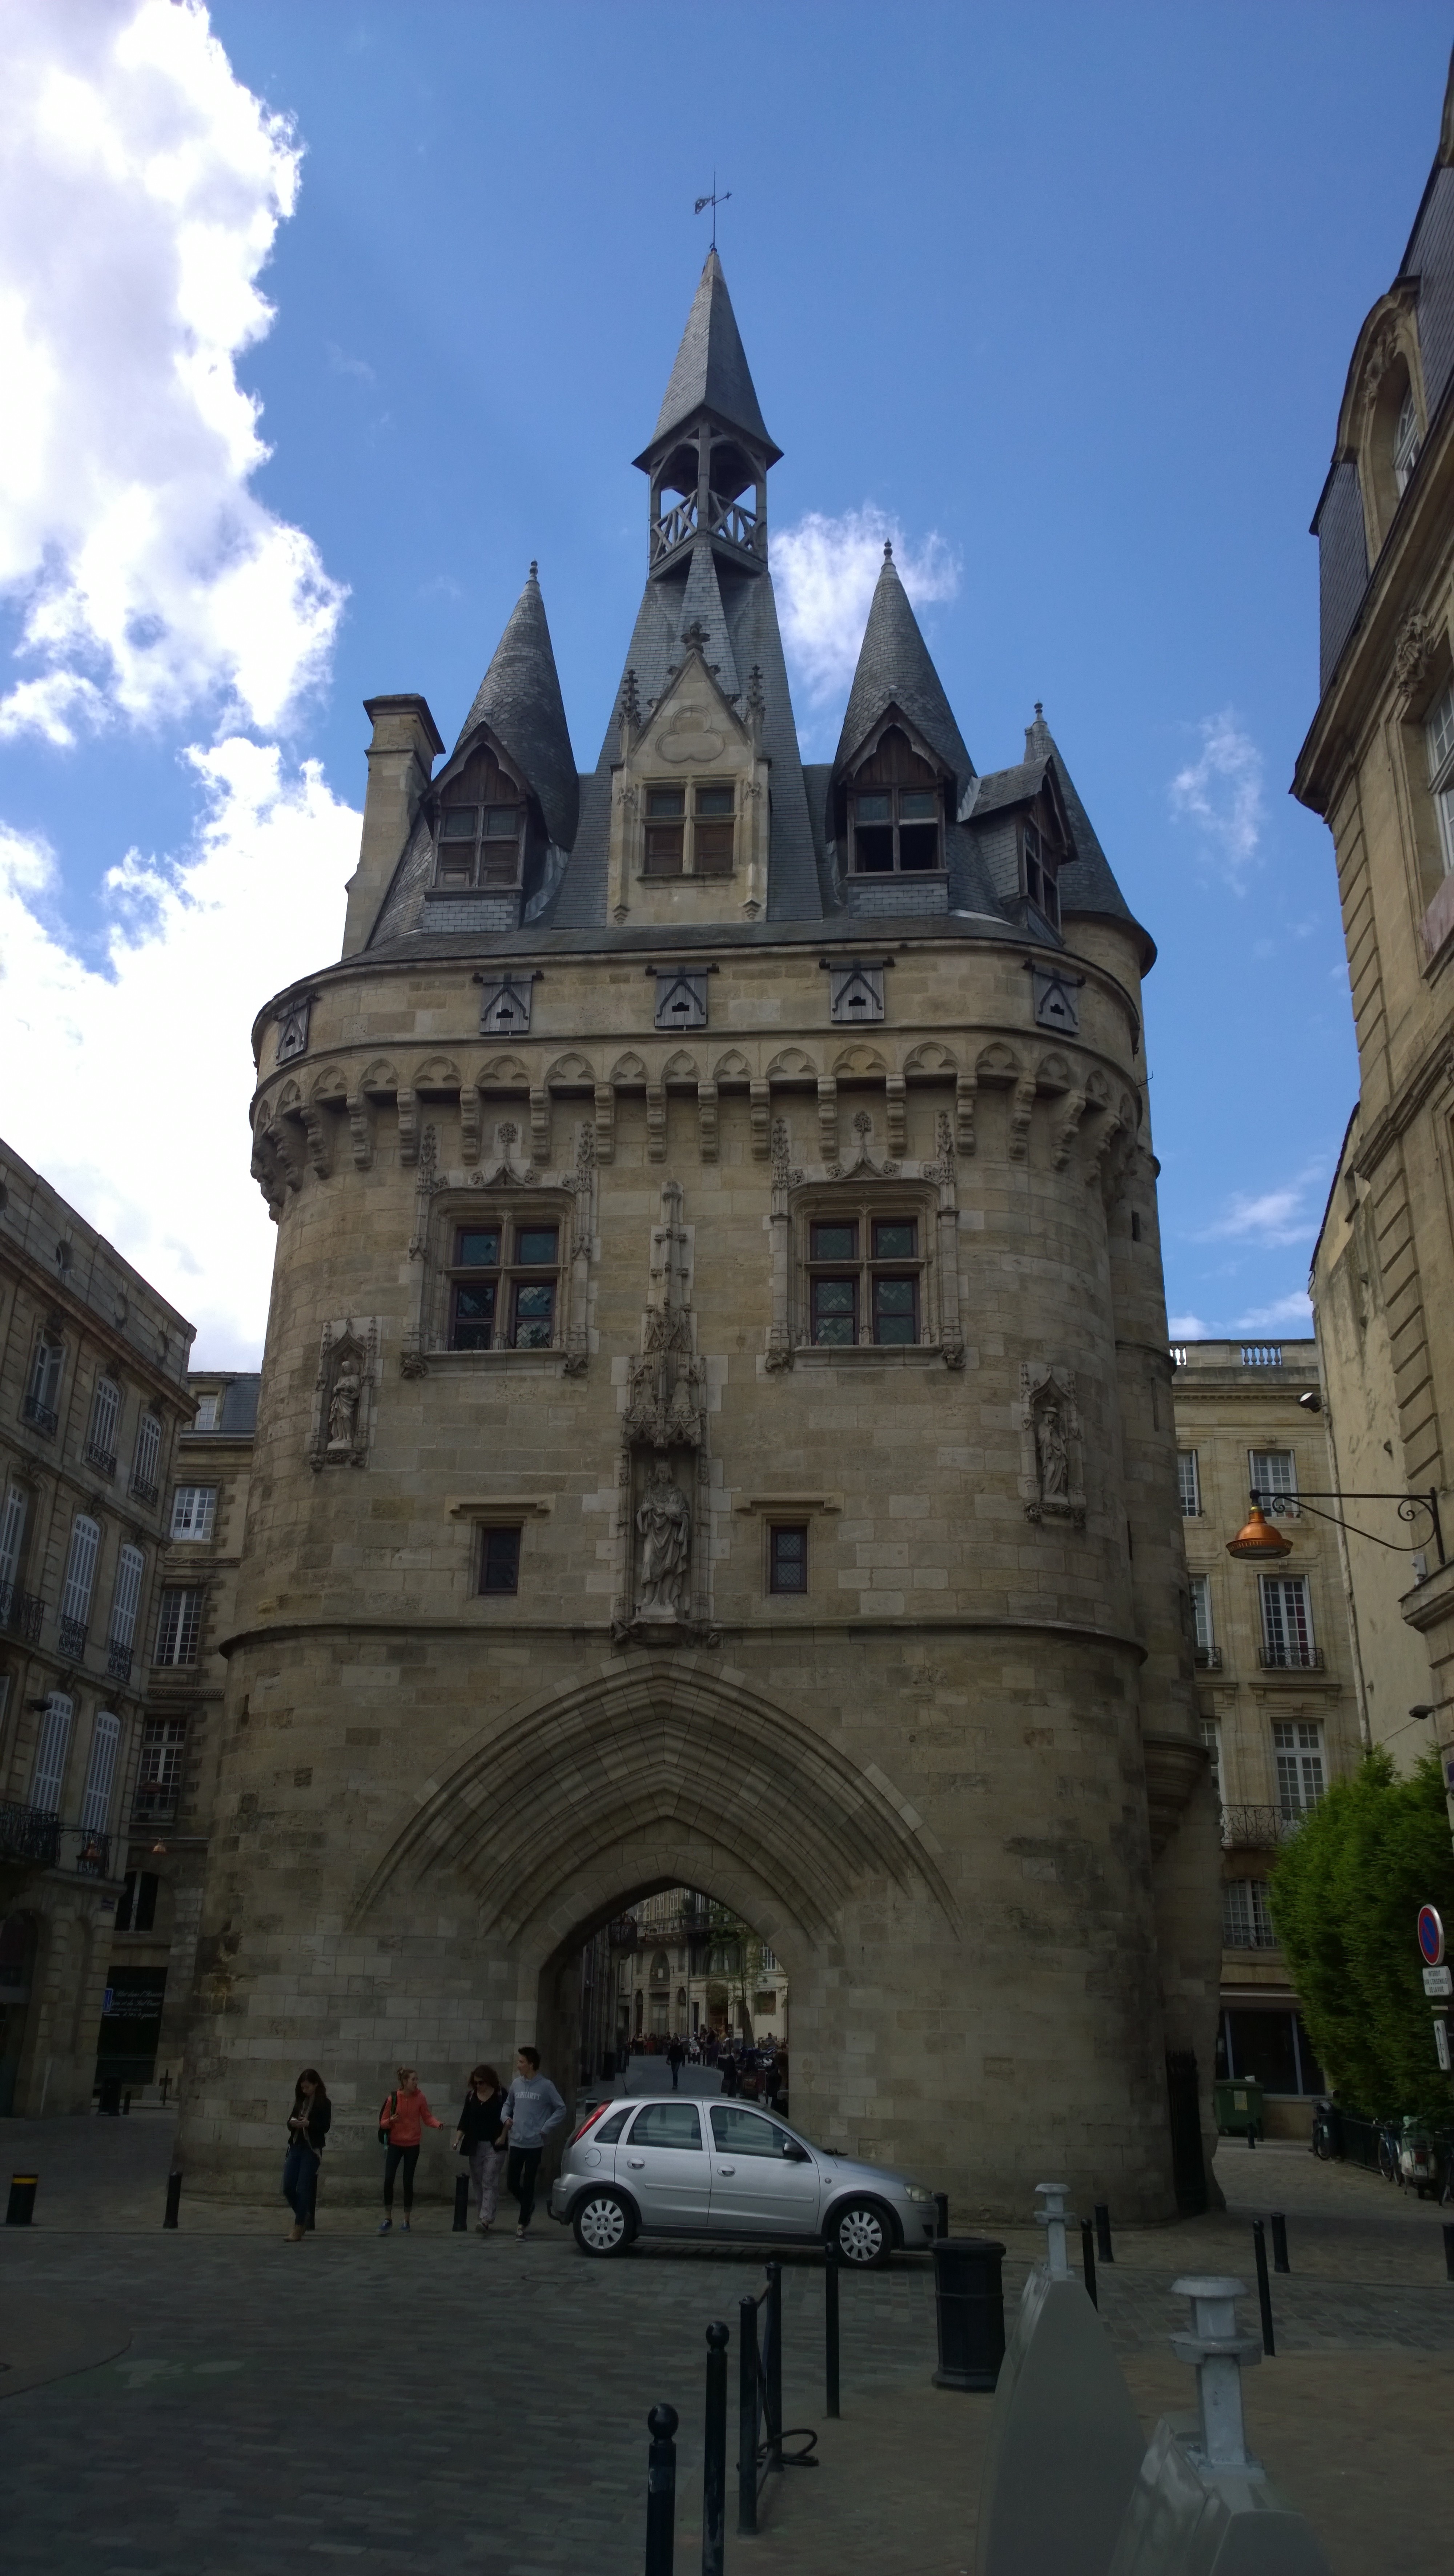 Bordeaux, France. We travel to the land of wineries and